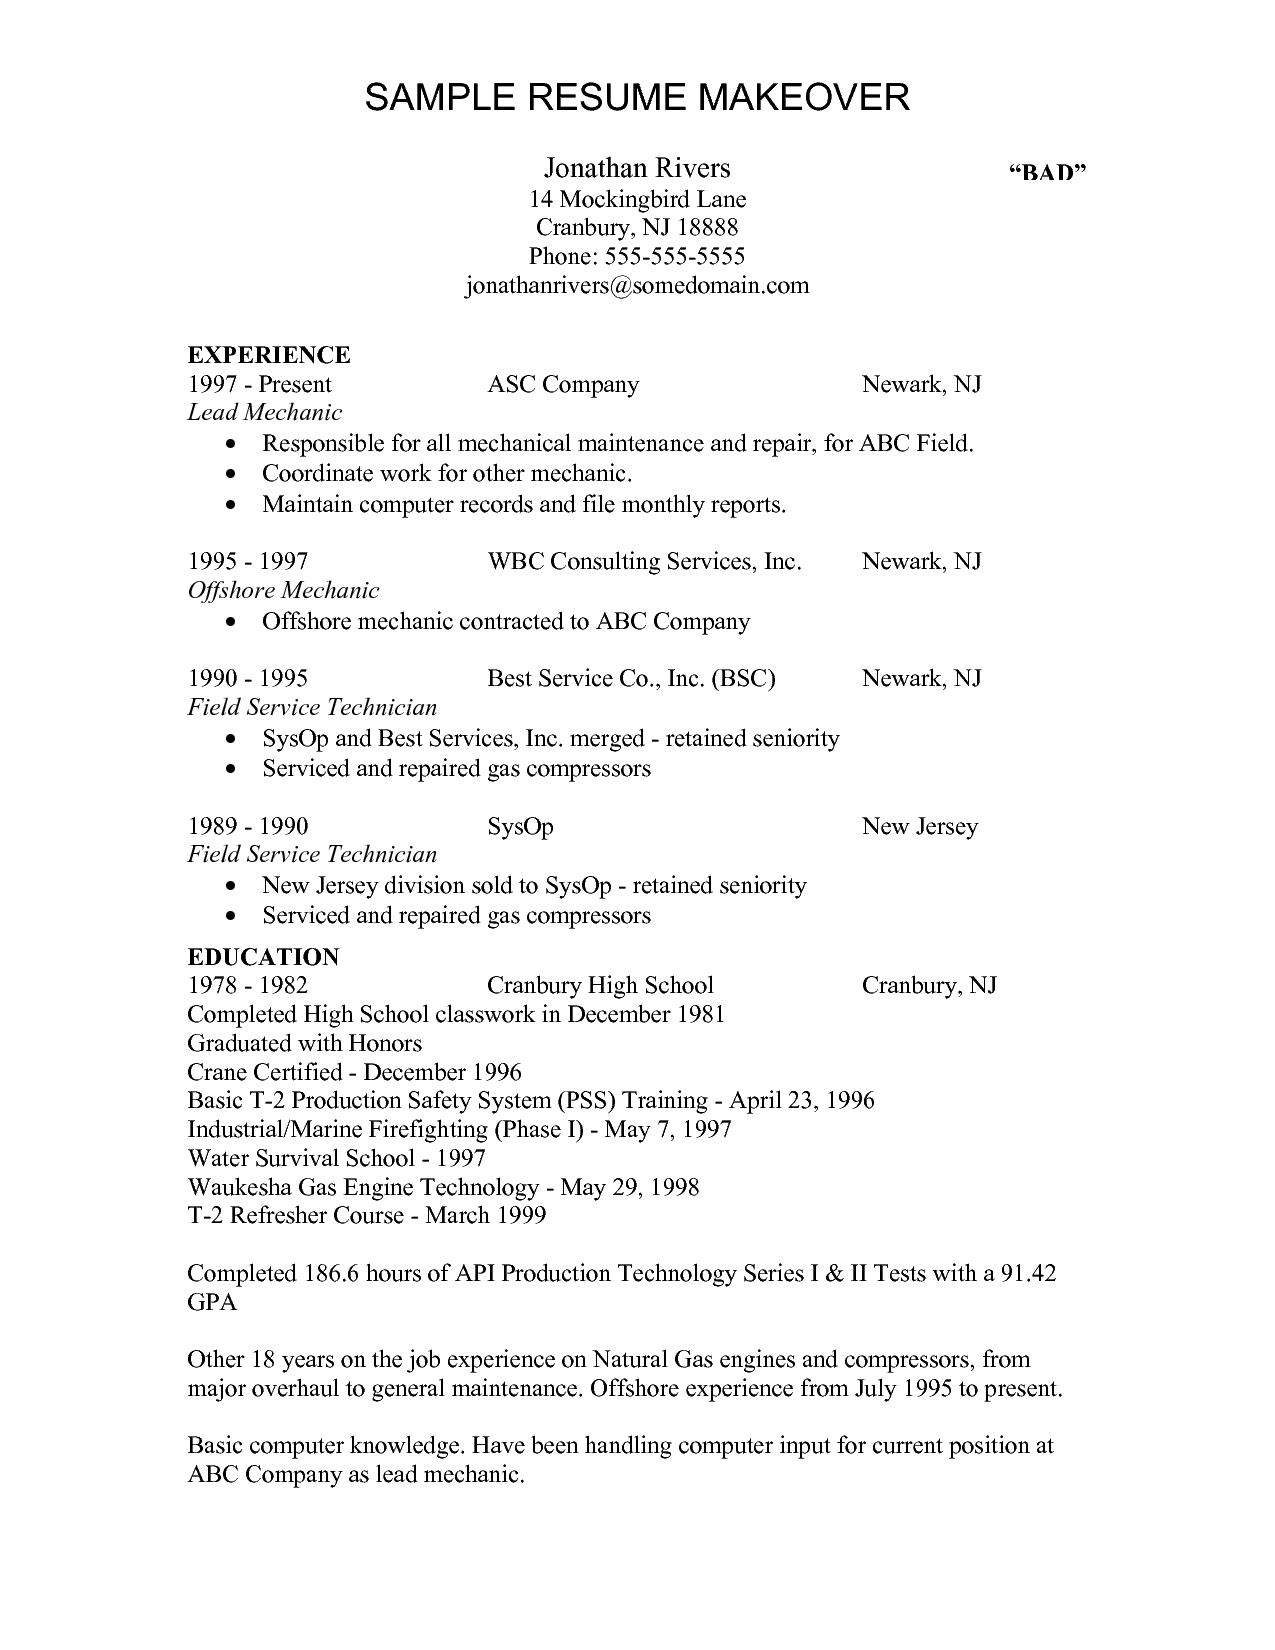 mechanic resume template interesting field service technician resume sample with experience - Entry Level Resume Examples And Writing Tips